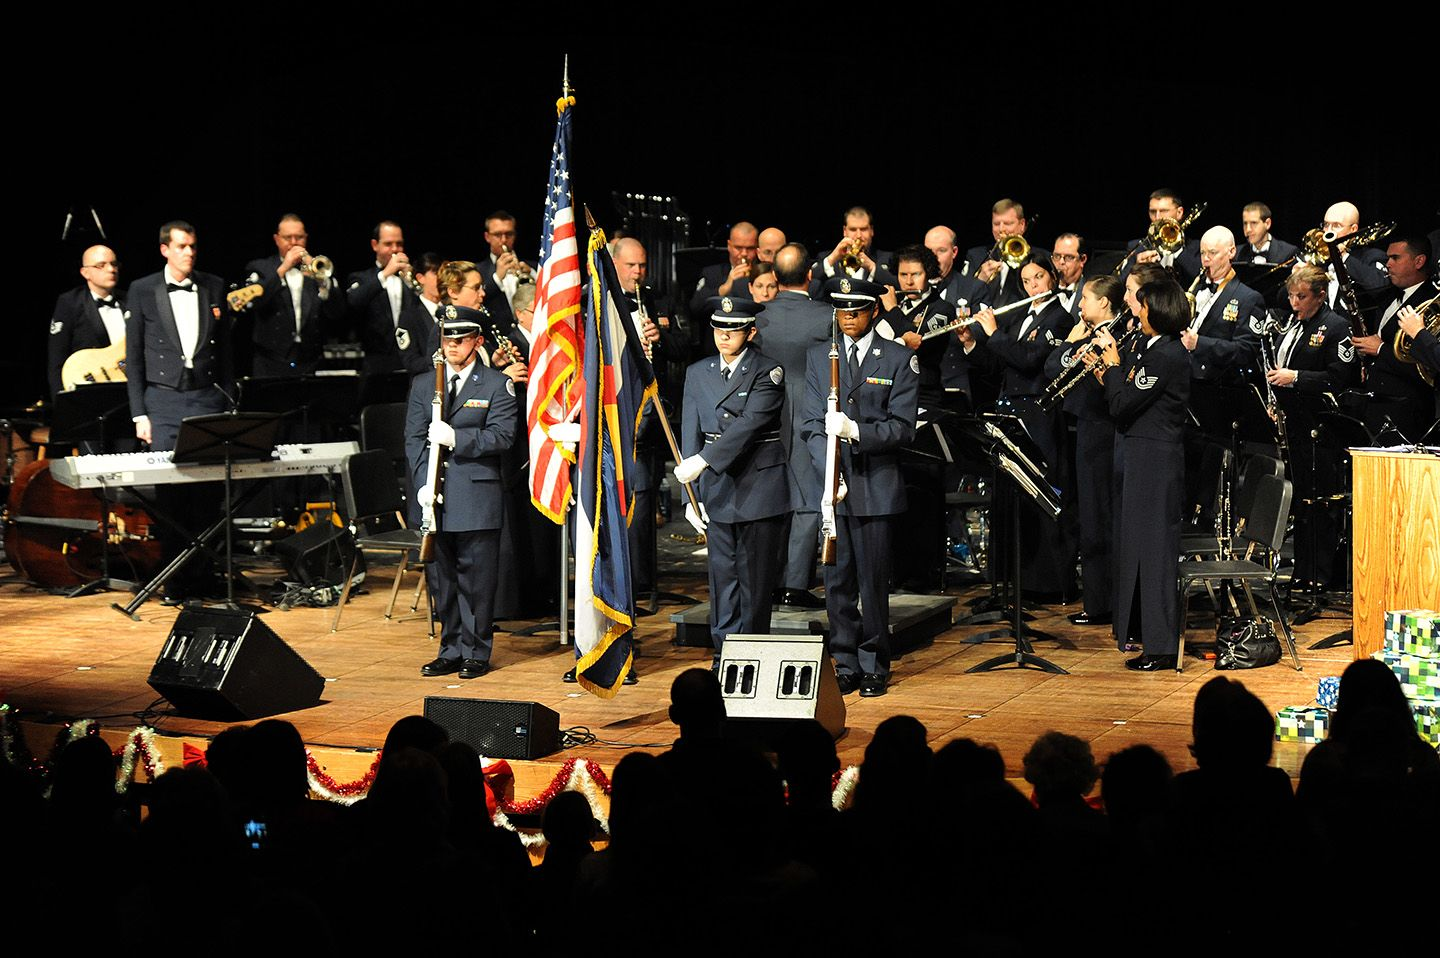 Air Force Junior ROTC cadets display the colors during a U